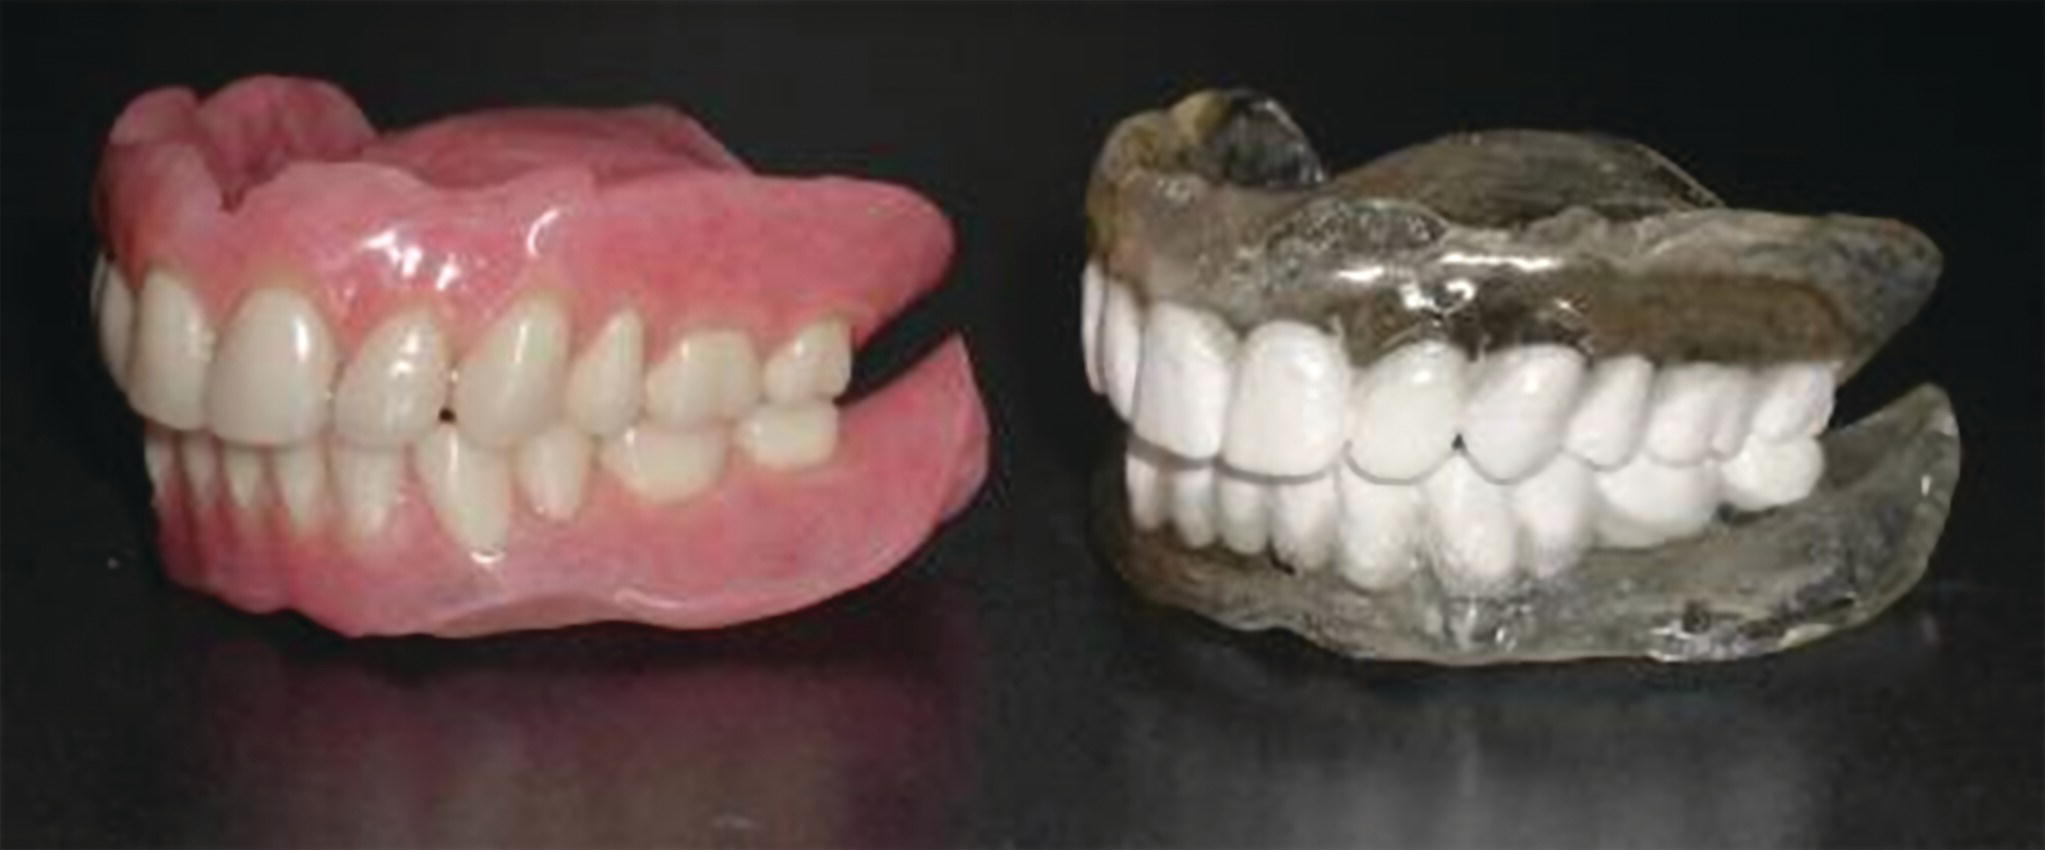 Photo of two teeth prostheses displaying screw‐retained (left) vs. cement‐retained (right) restorations.